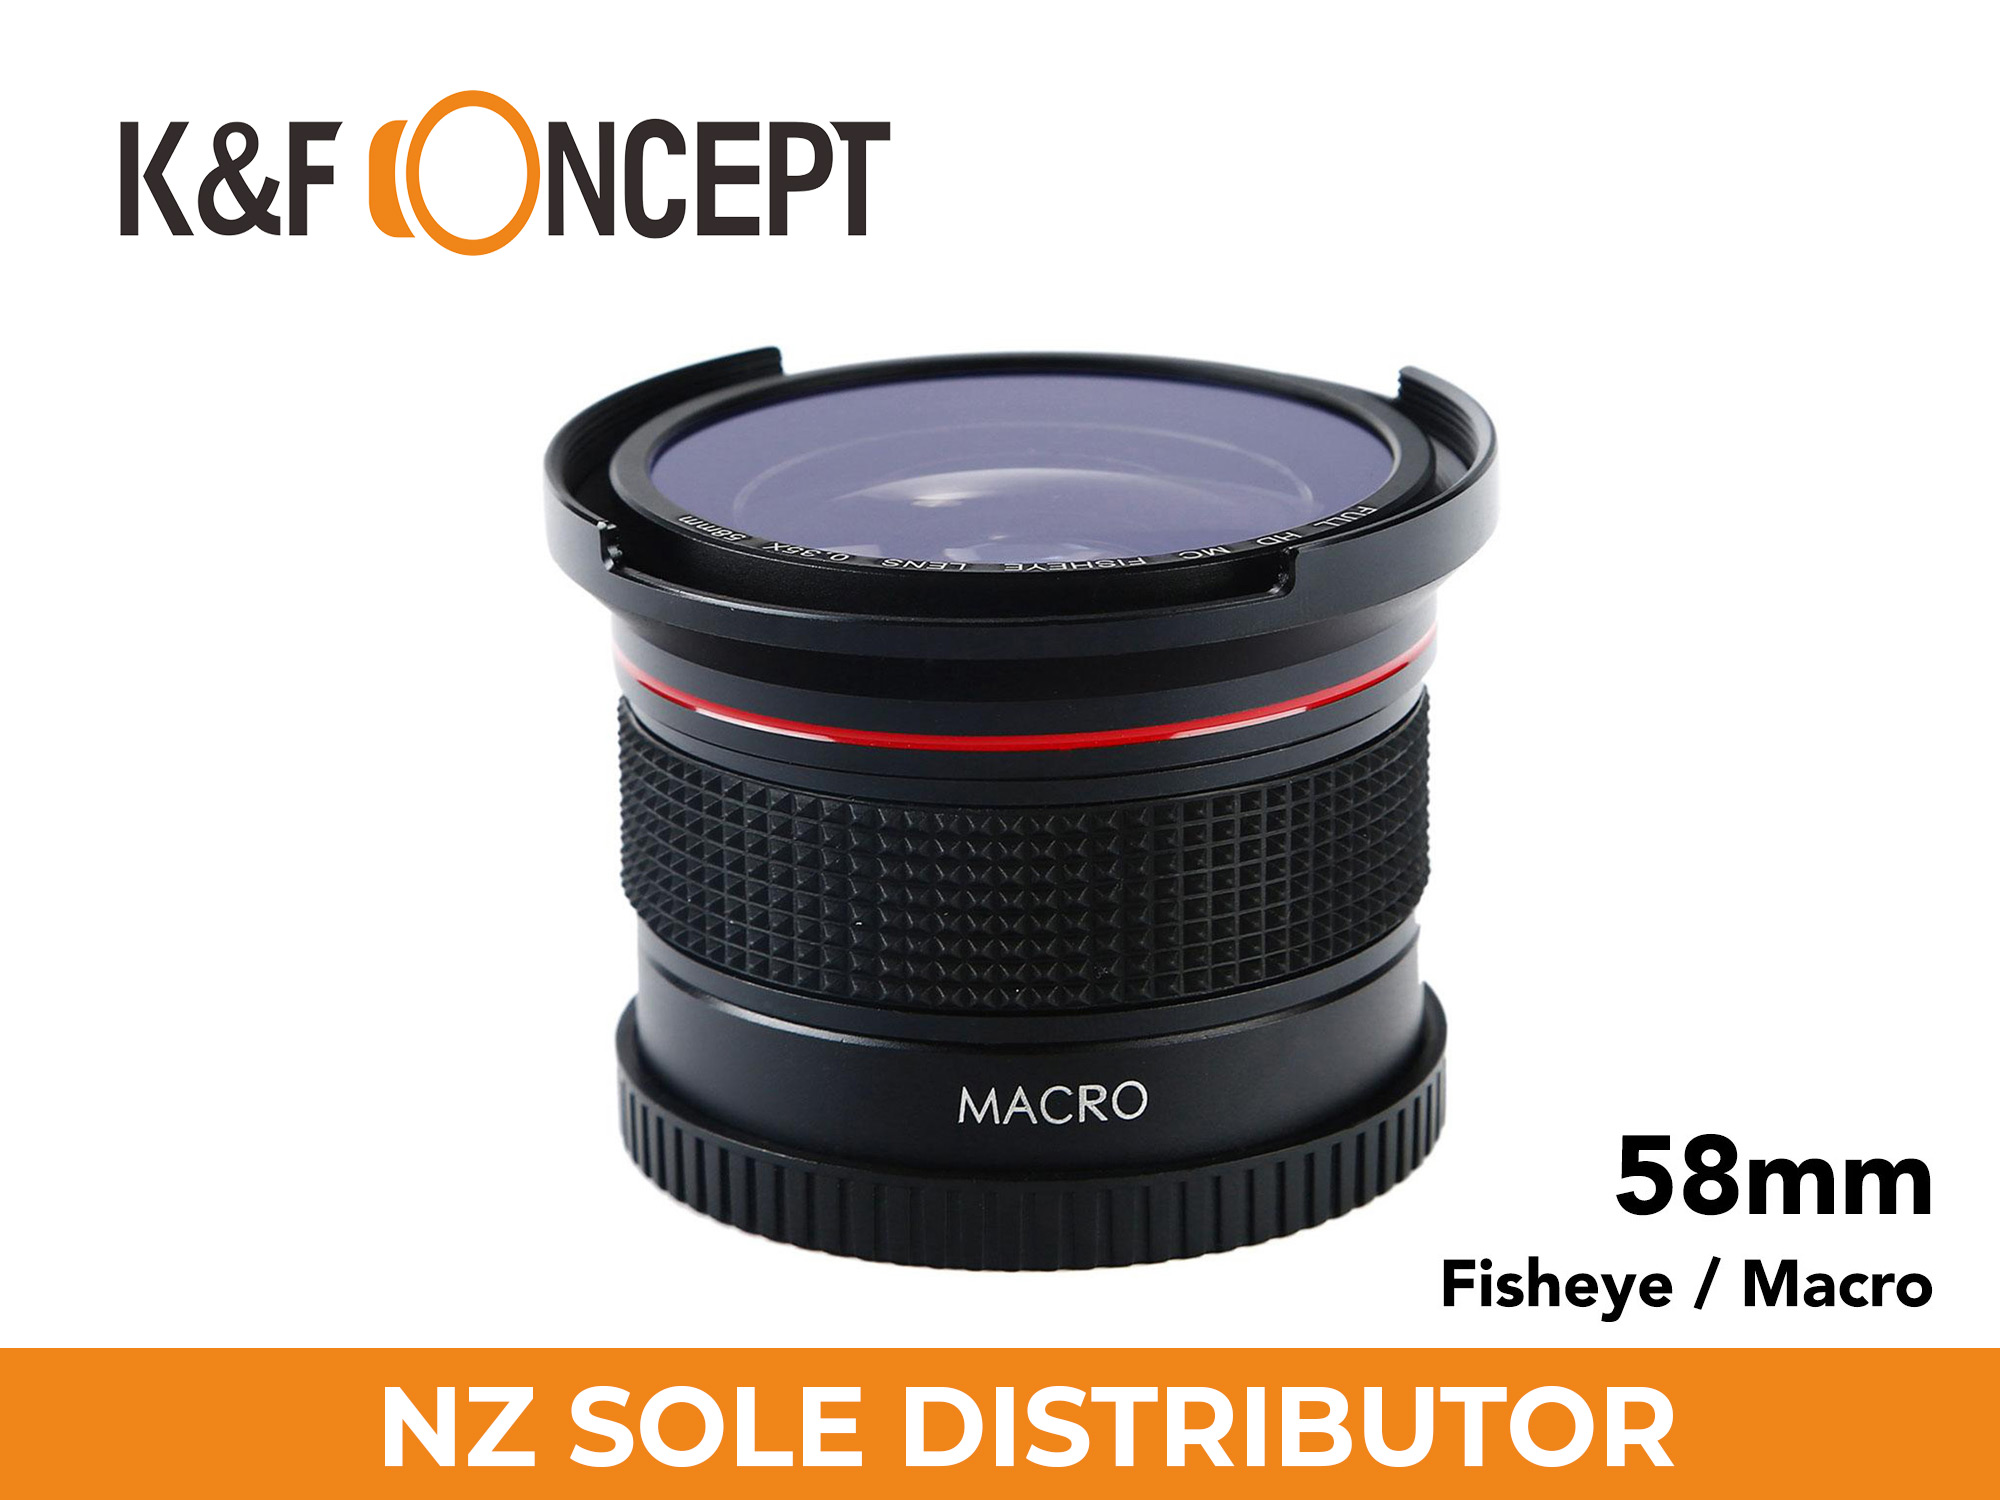 0.35X HD Fisheye Adapter Lens for 58mm Lenses  - K&F Concept